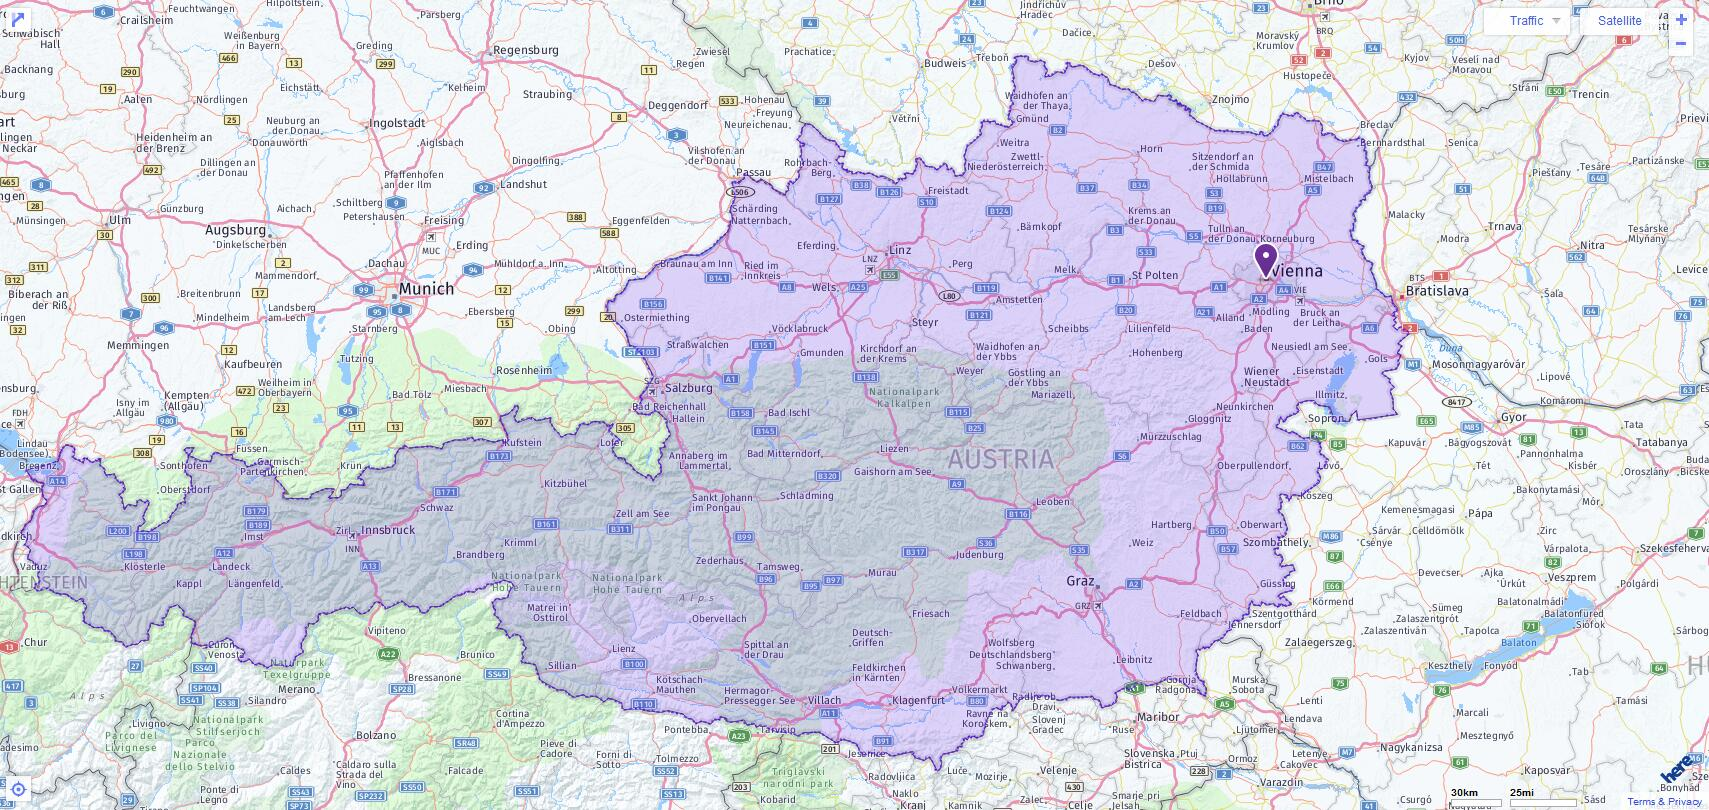 ACT Test Centers and Dates in Austria